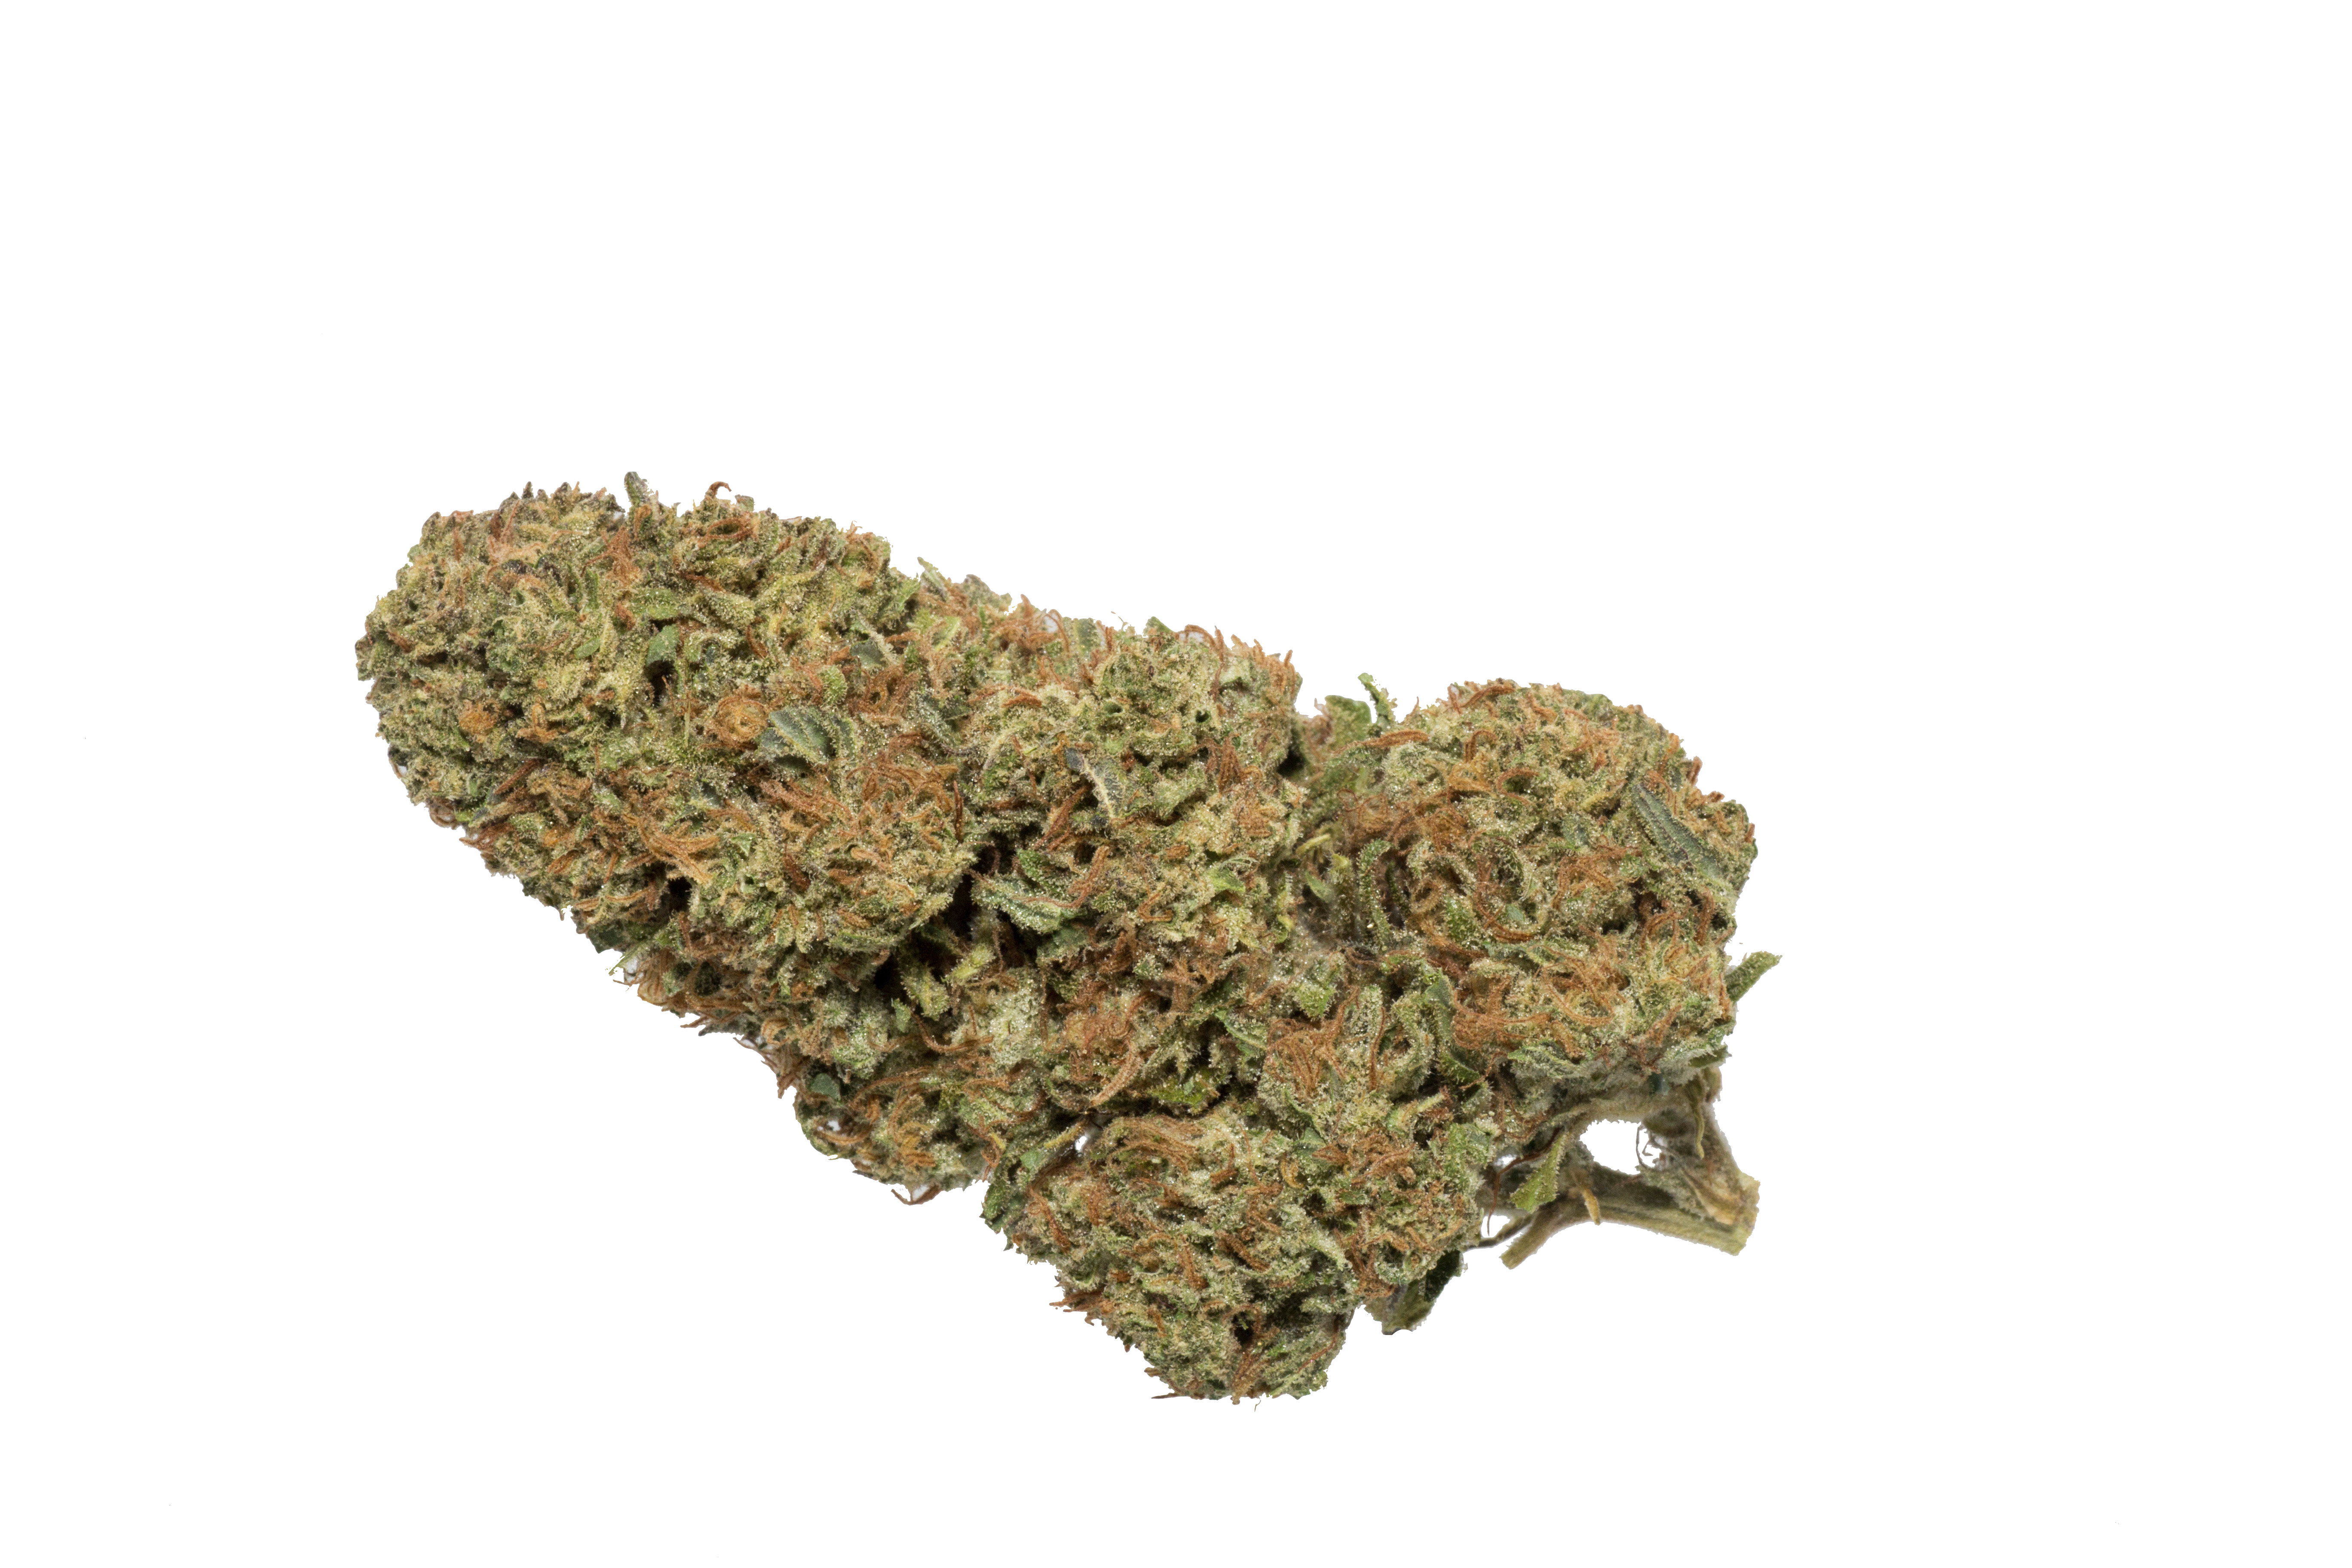 Kush Guide - Your Guide to Recreational Cannabis